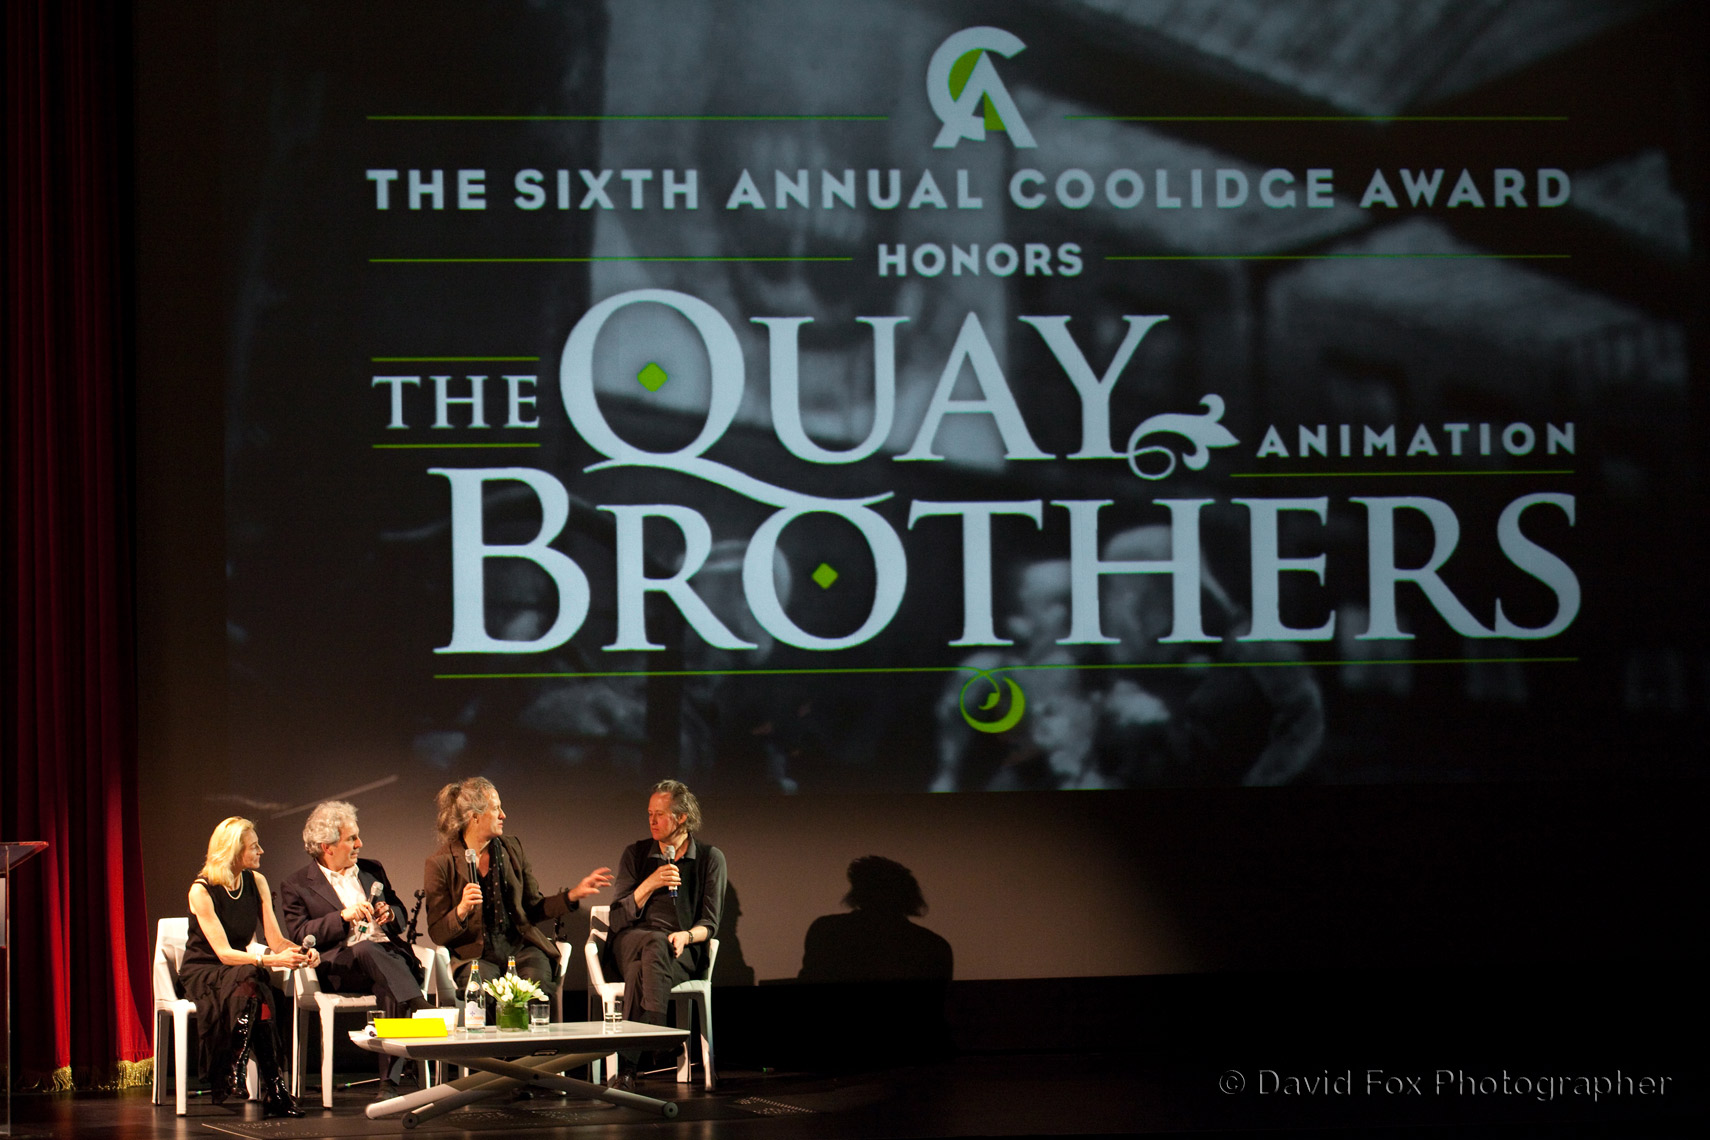 6th Annual Coolidge Award The Quay Brothers Animation Brookline